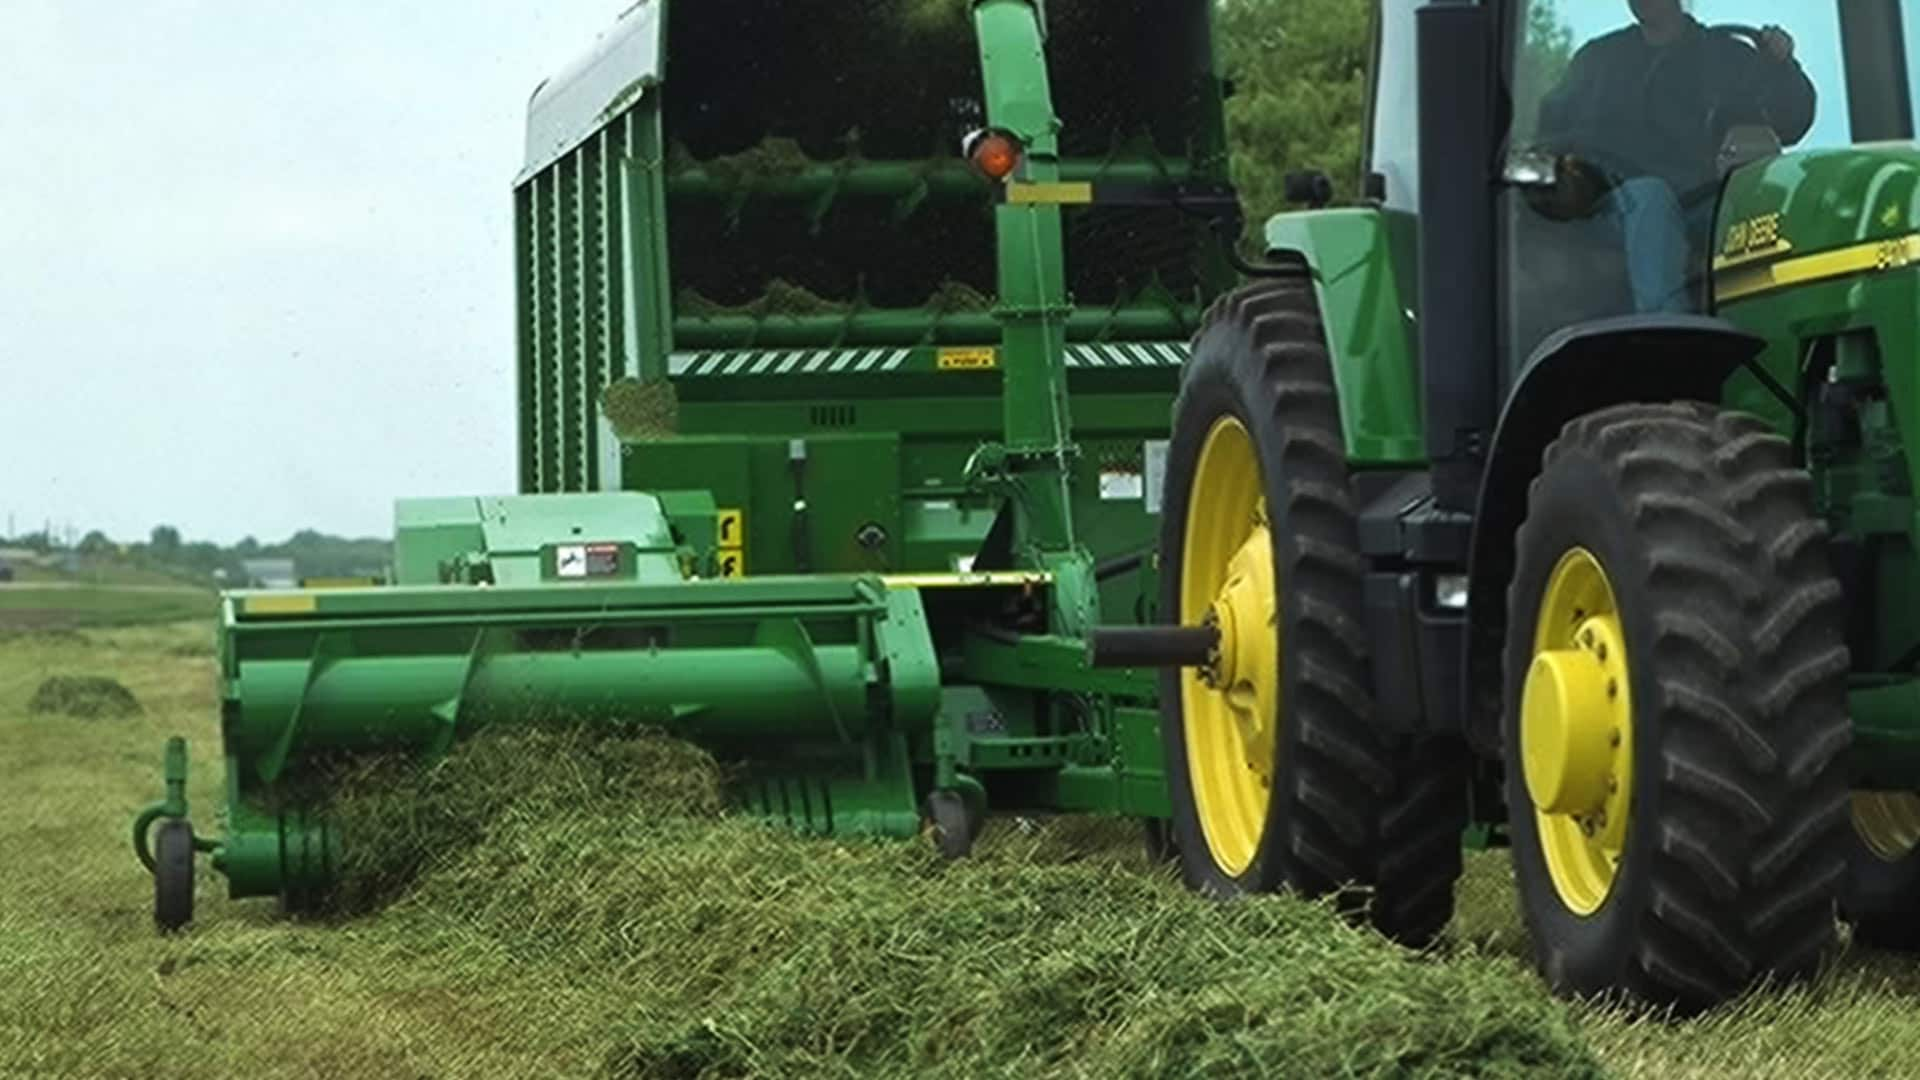 8410 Pull-type forage harvester moving through field